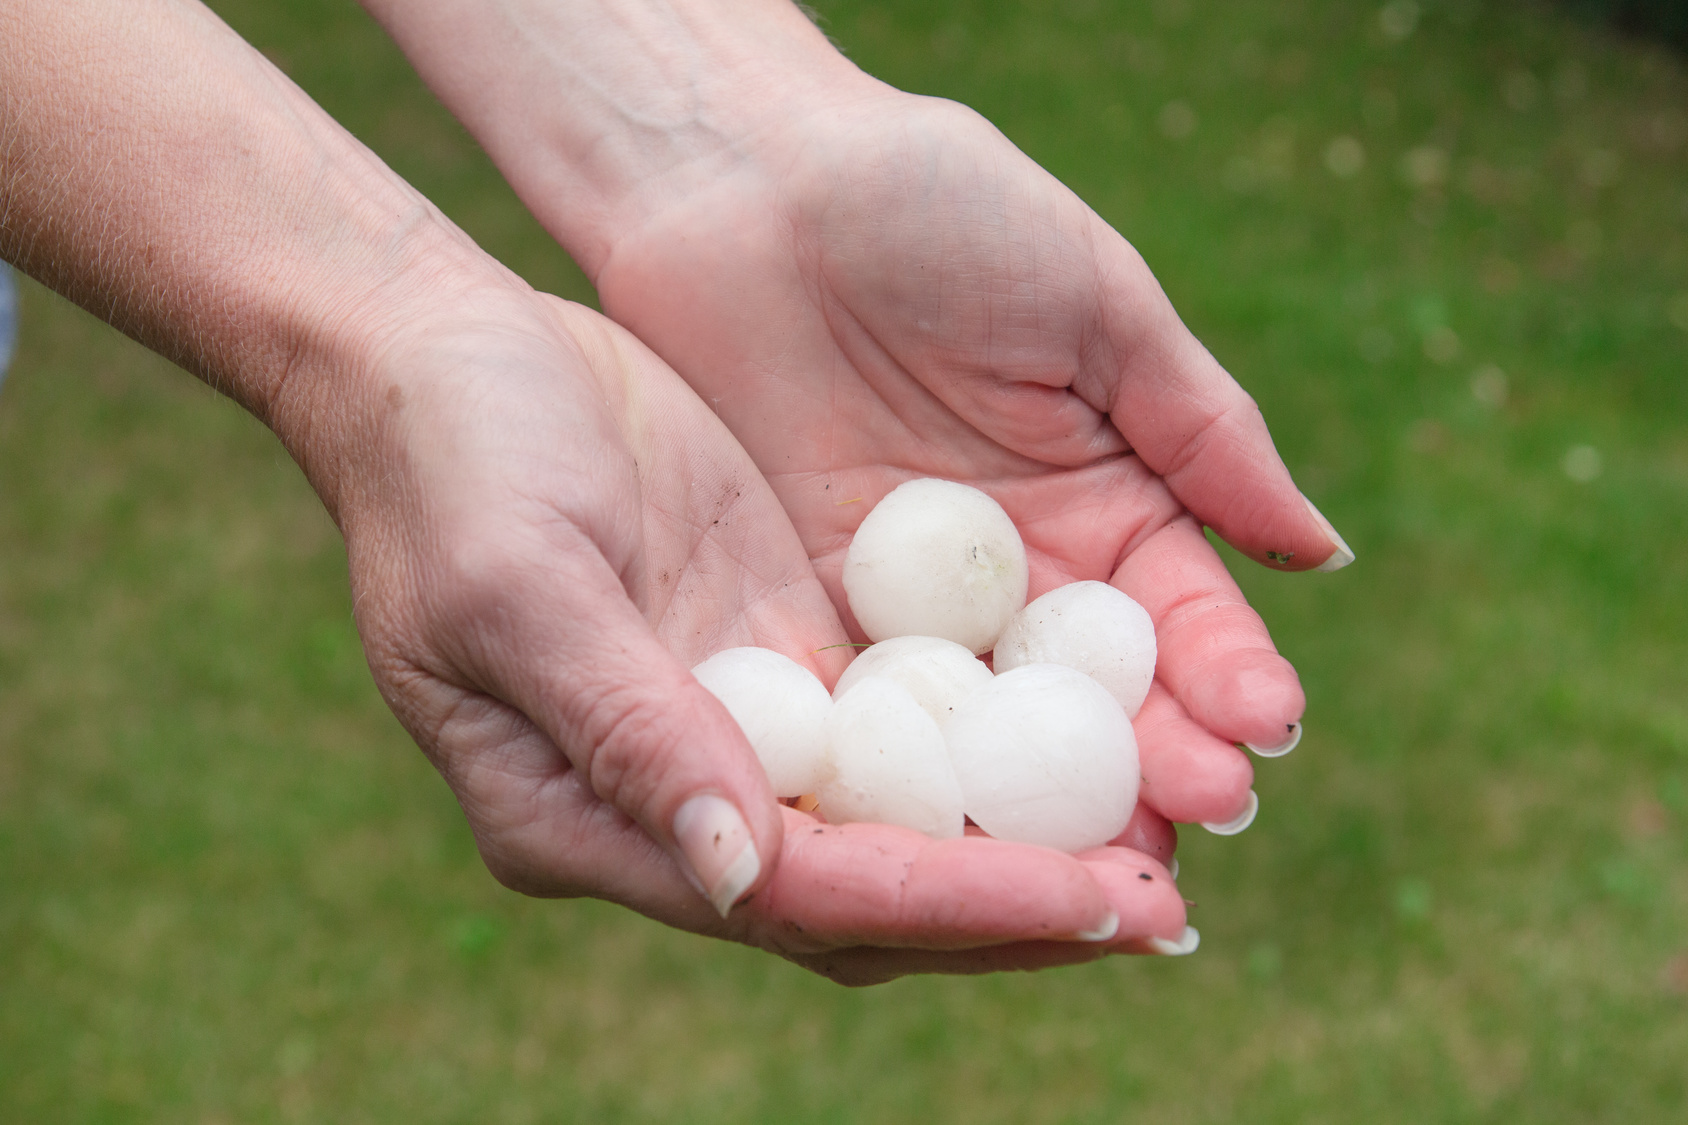 It's Hail Season in Colorado. Here's What You Need to Know